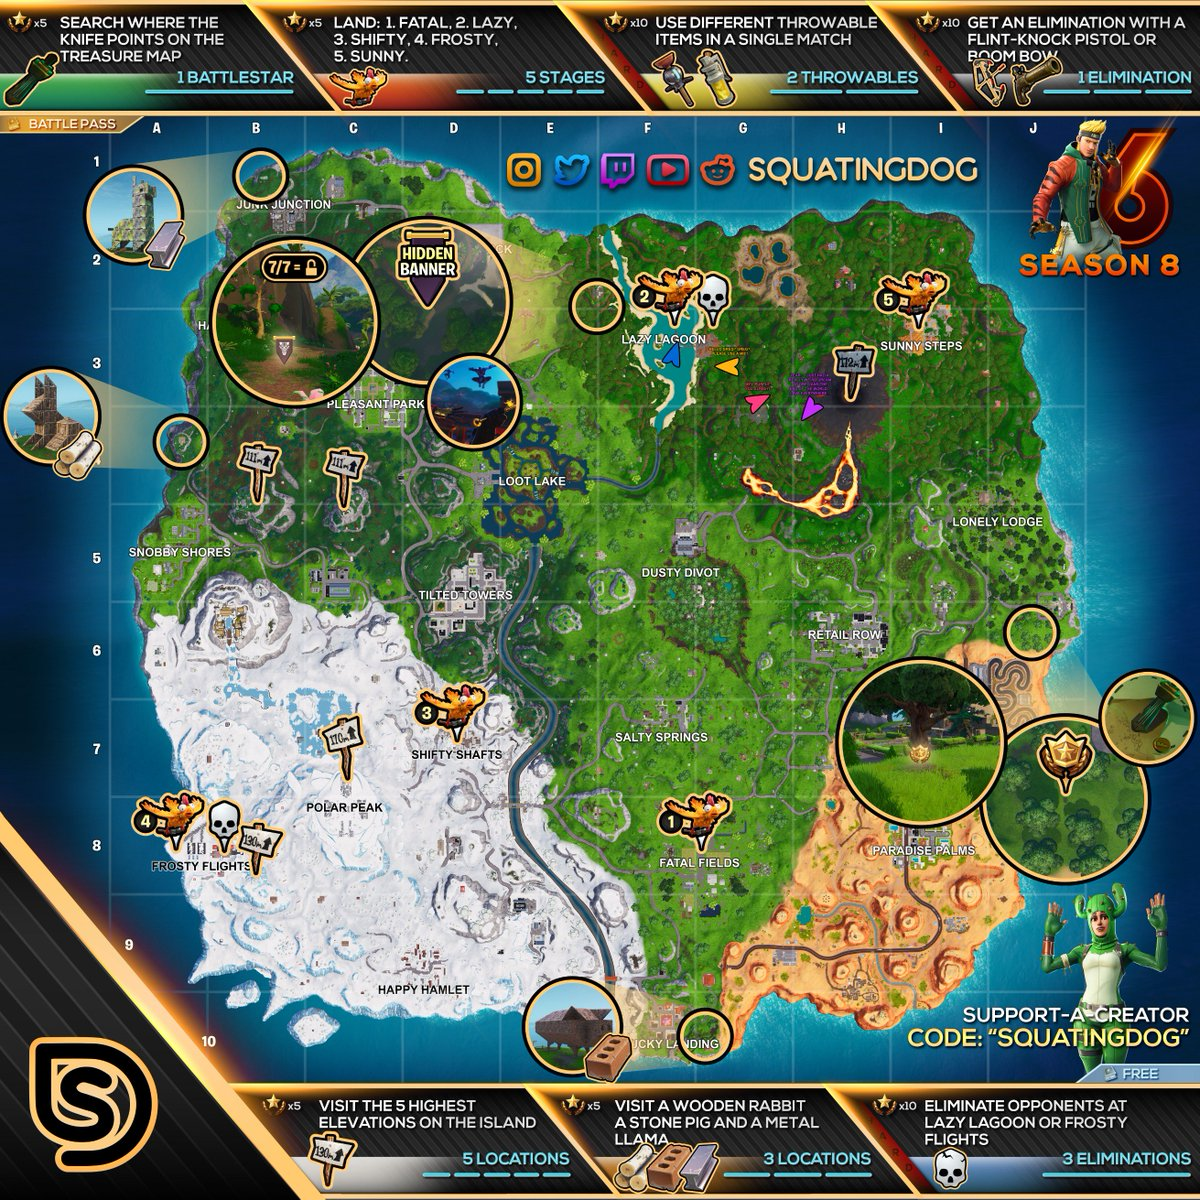 Fortnite Season 9 Cheat Sheet | Fortnite Aimbot Download Xbox One Free